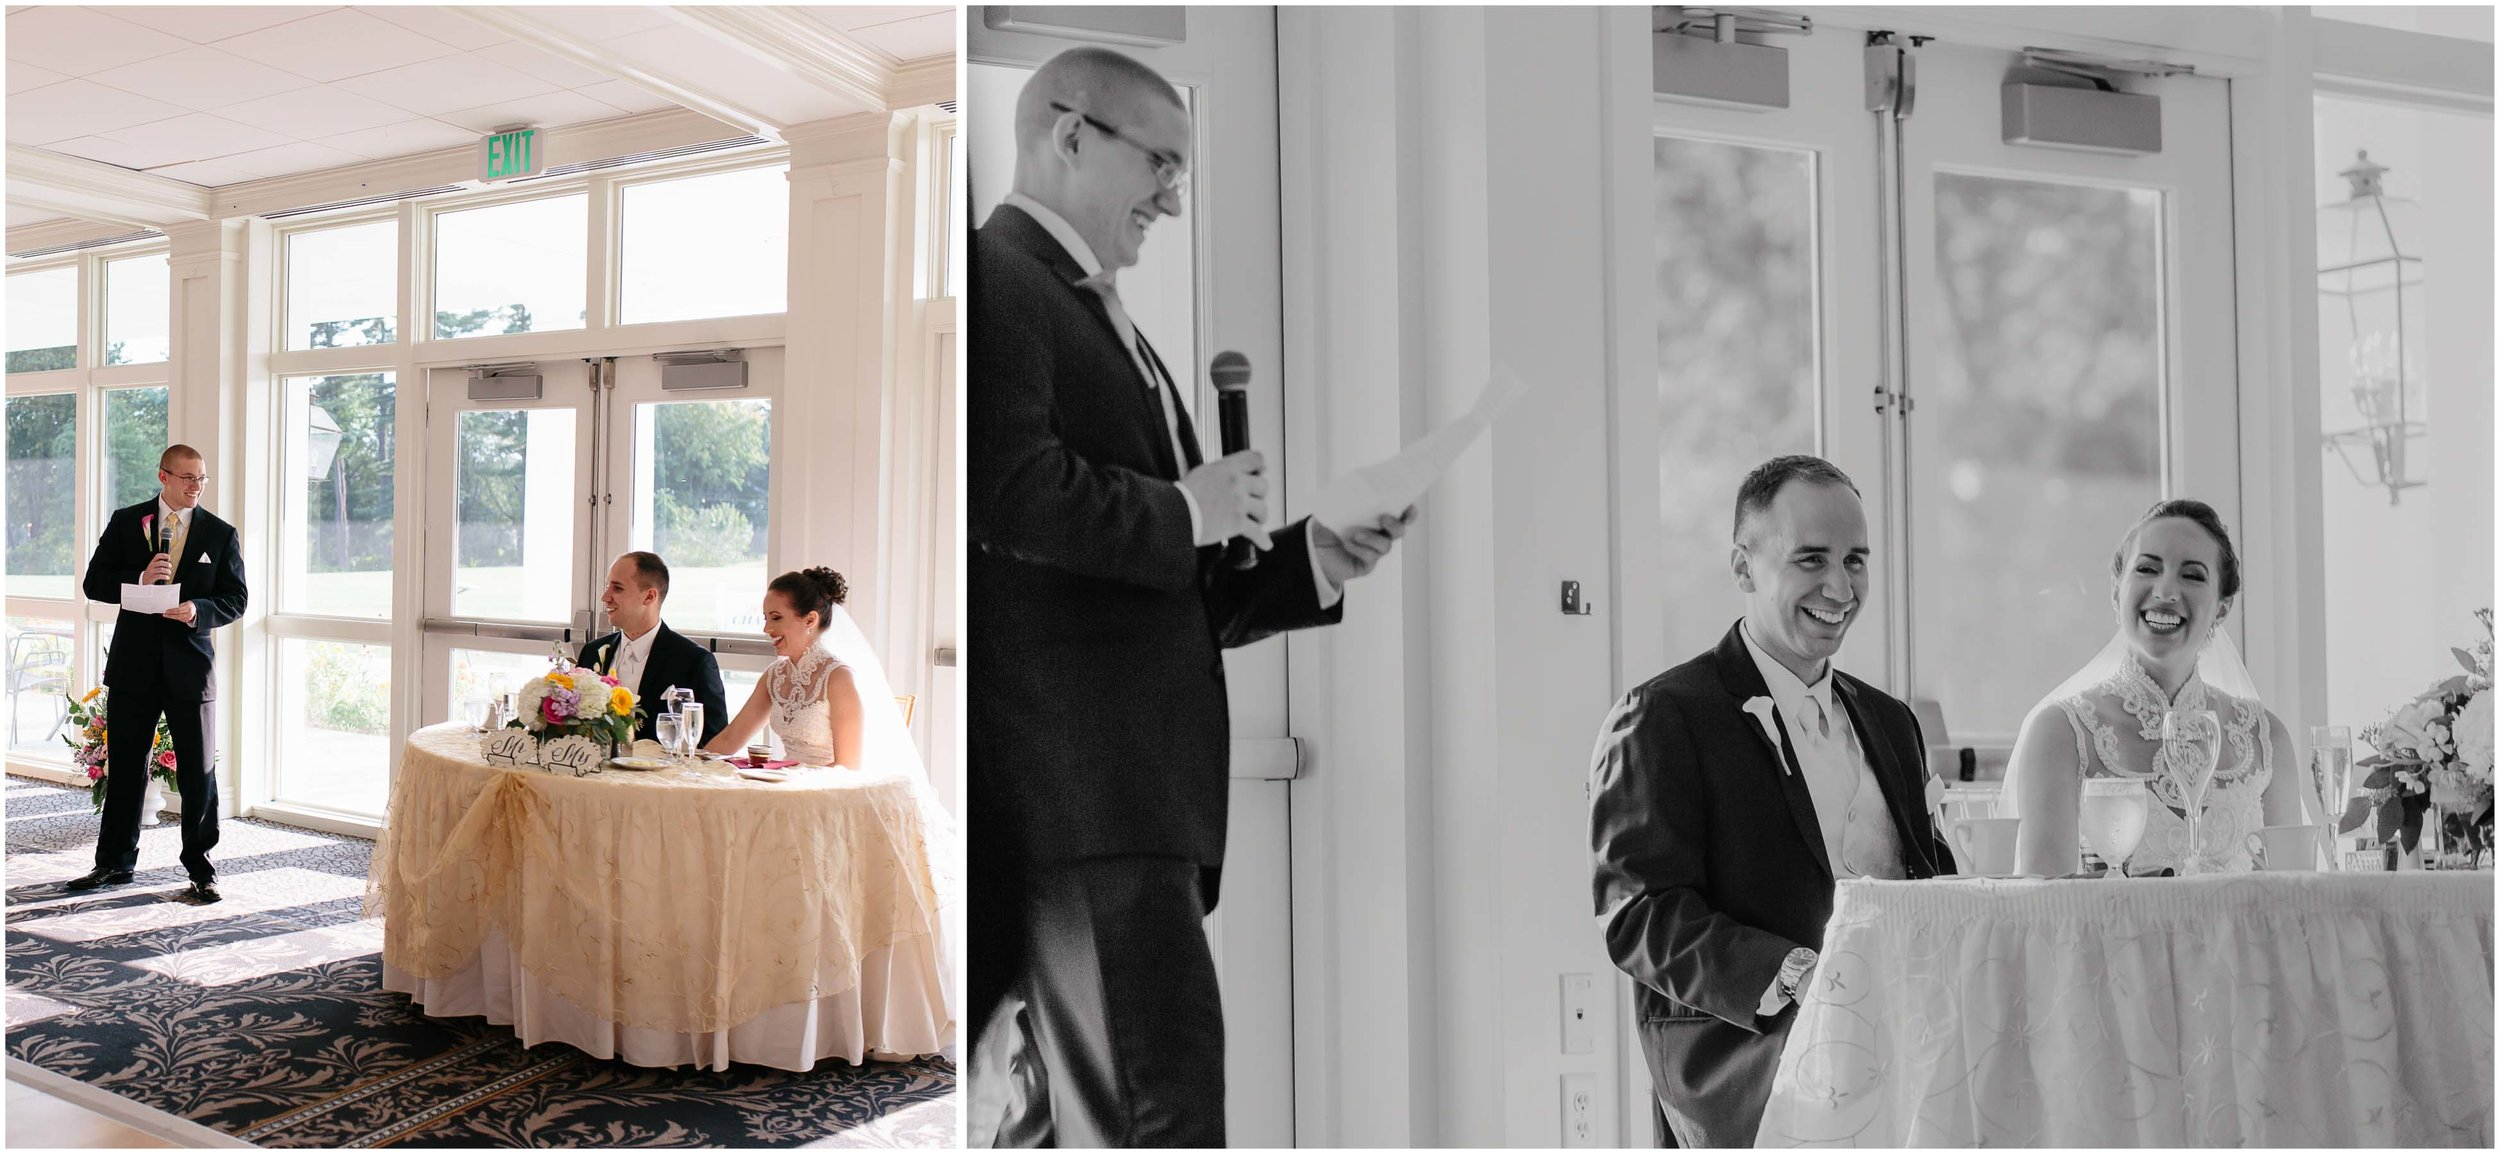 Chic New Hampshire Wedding at Manchester Country Club Bedford - best man speech/toast